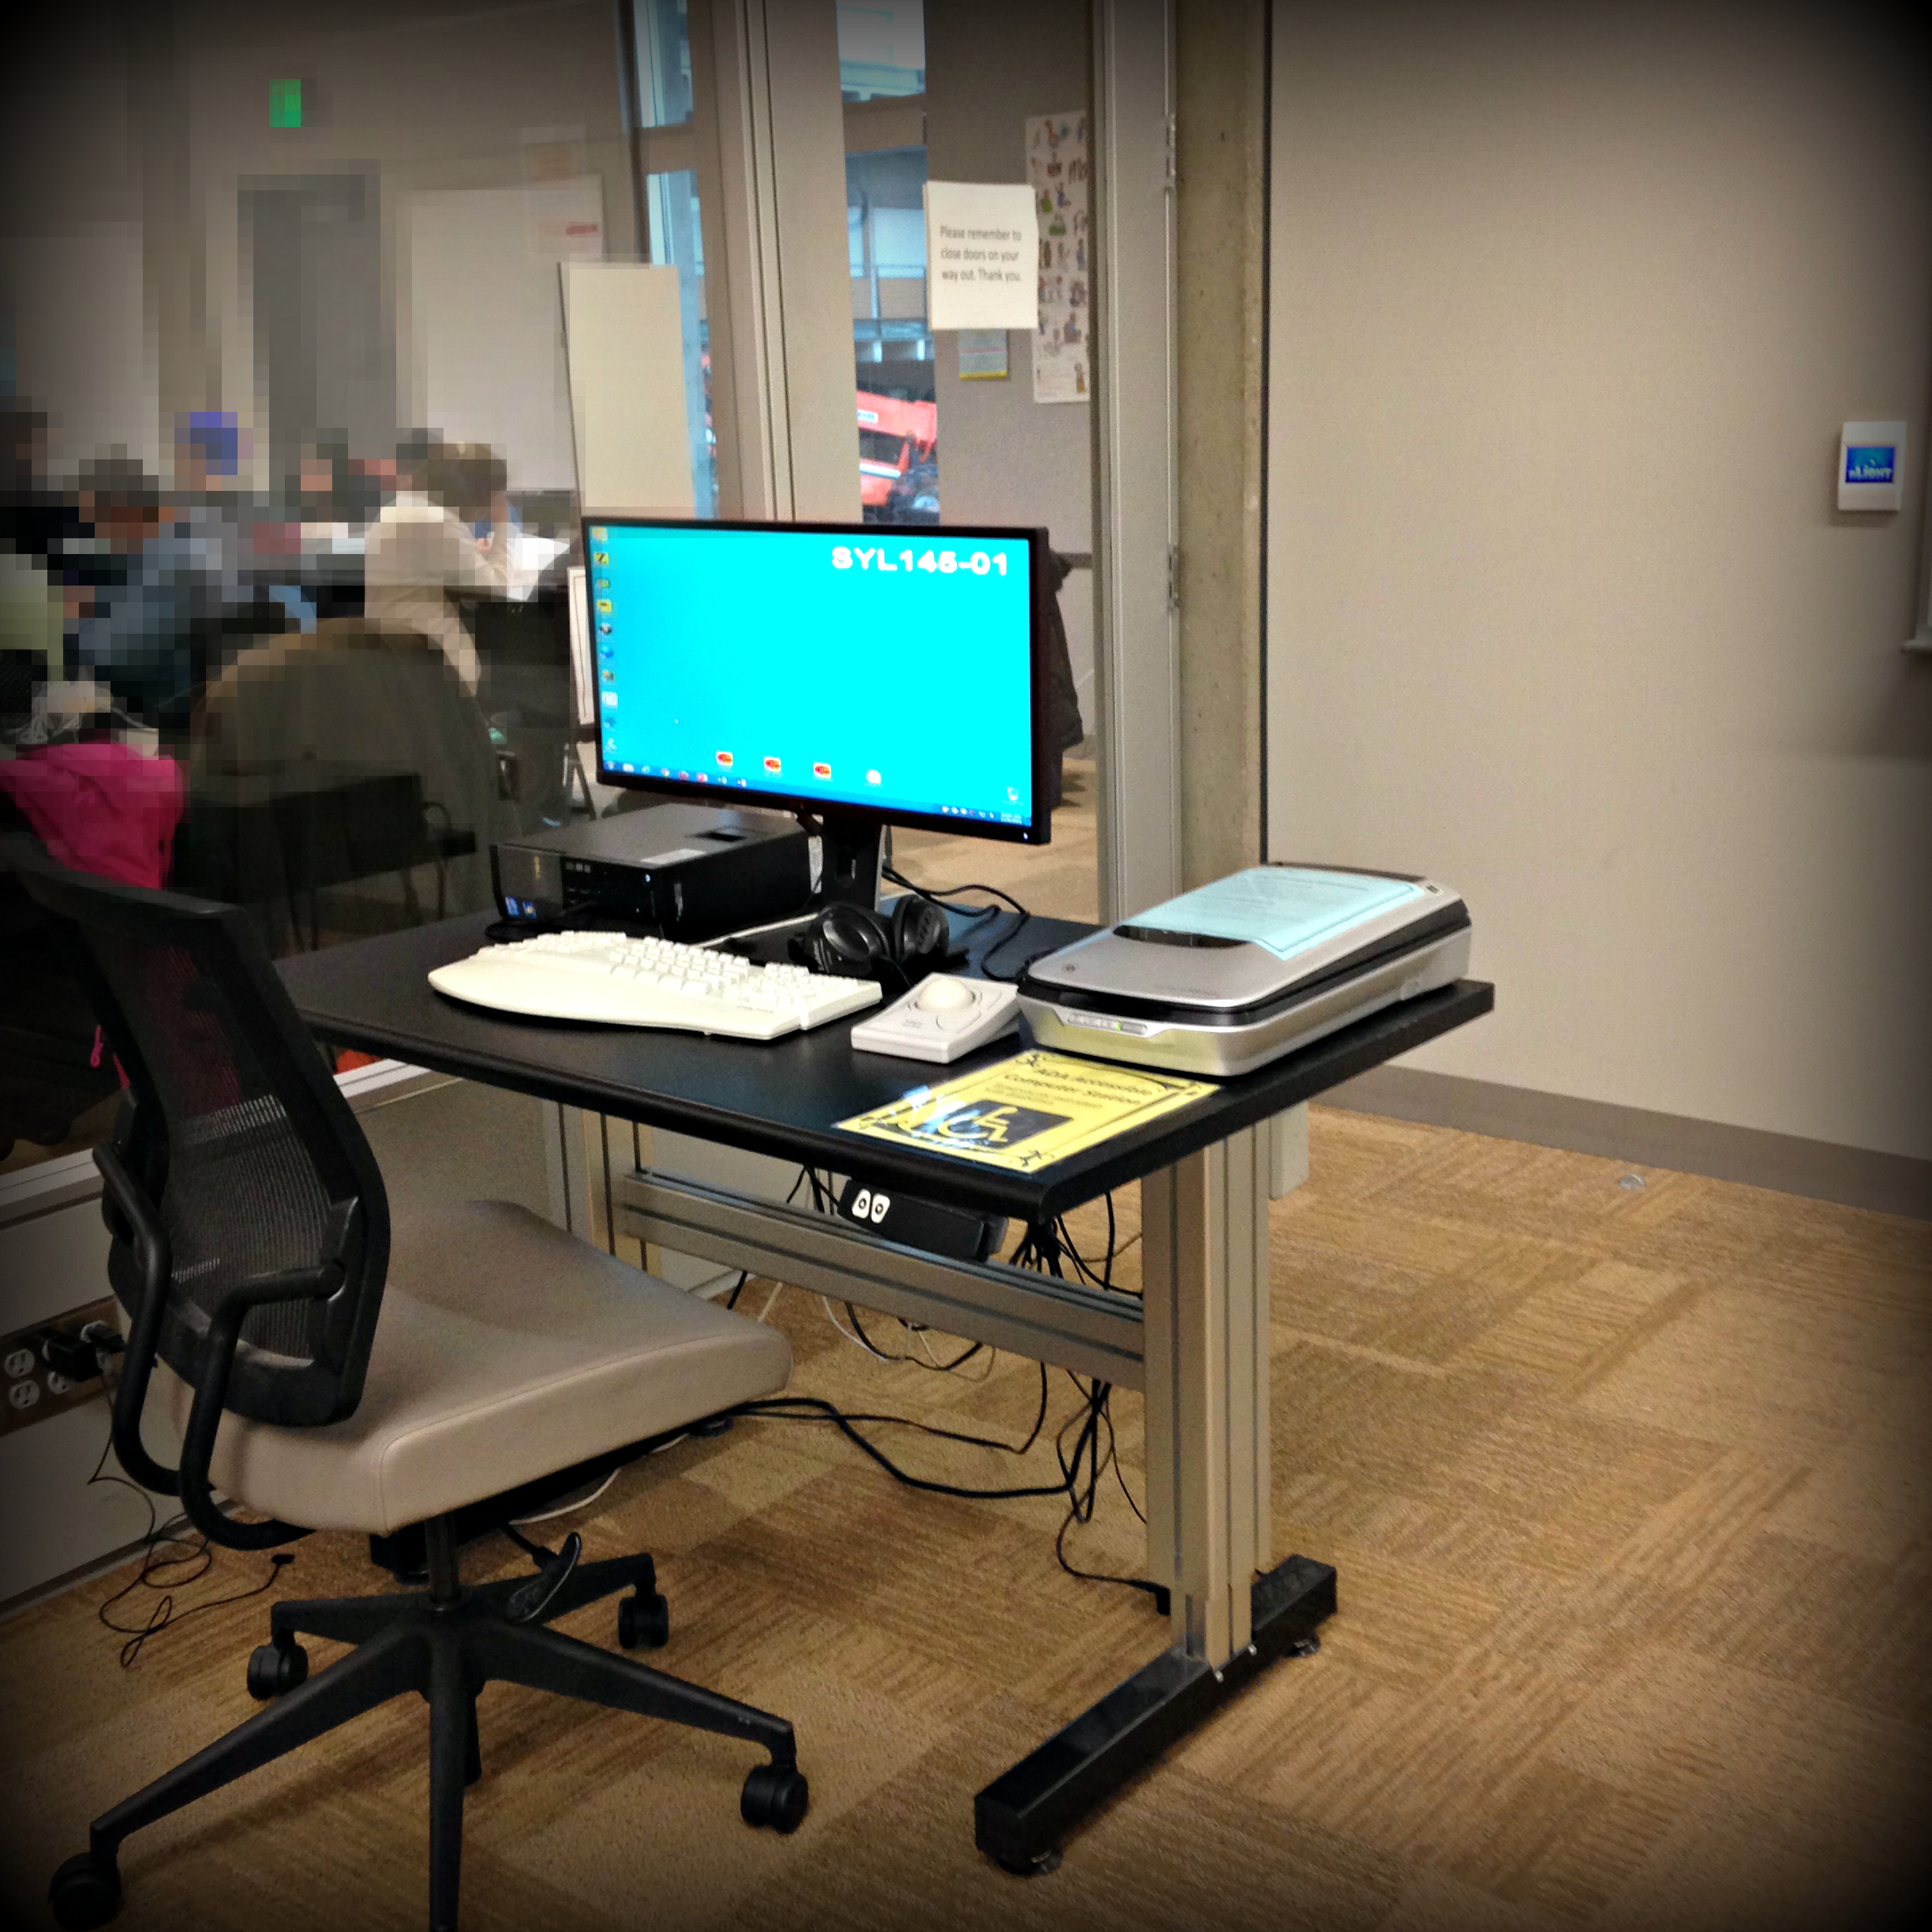 Computer is in Room 145 located near the whiteboards in the front of the room. & Computer station u2013 SY LIB Student Learning Center (Room 145 ...